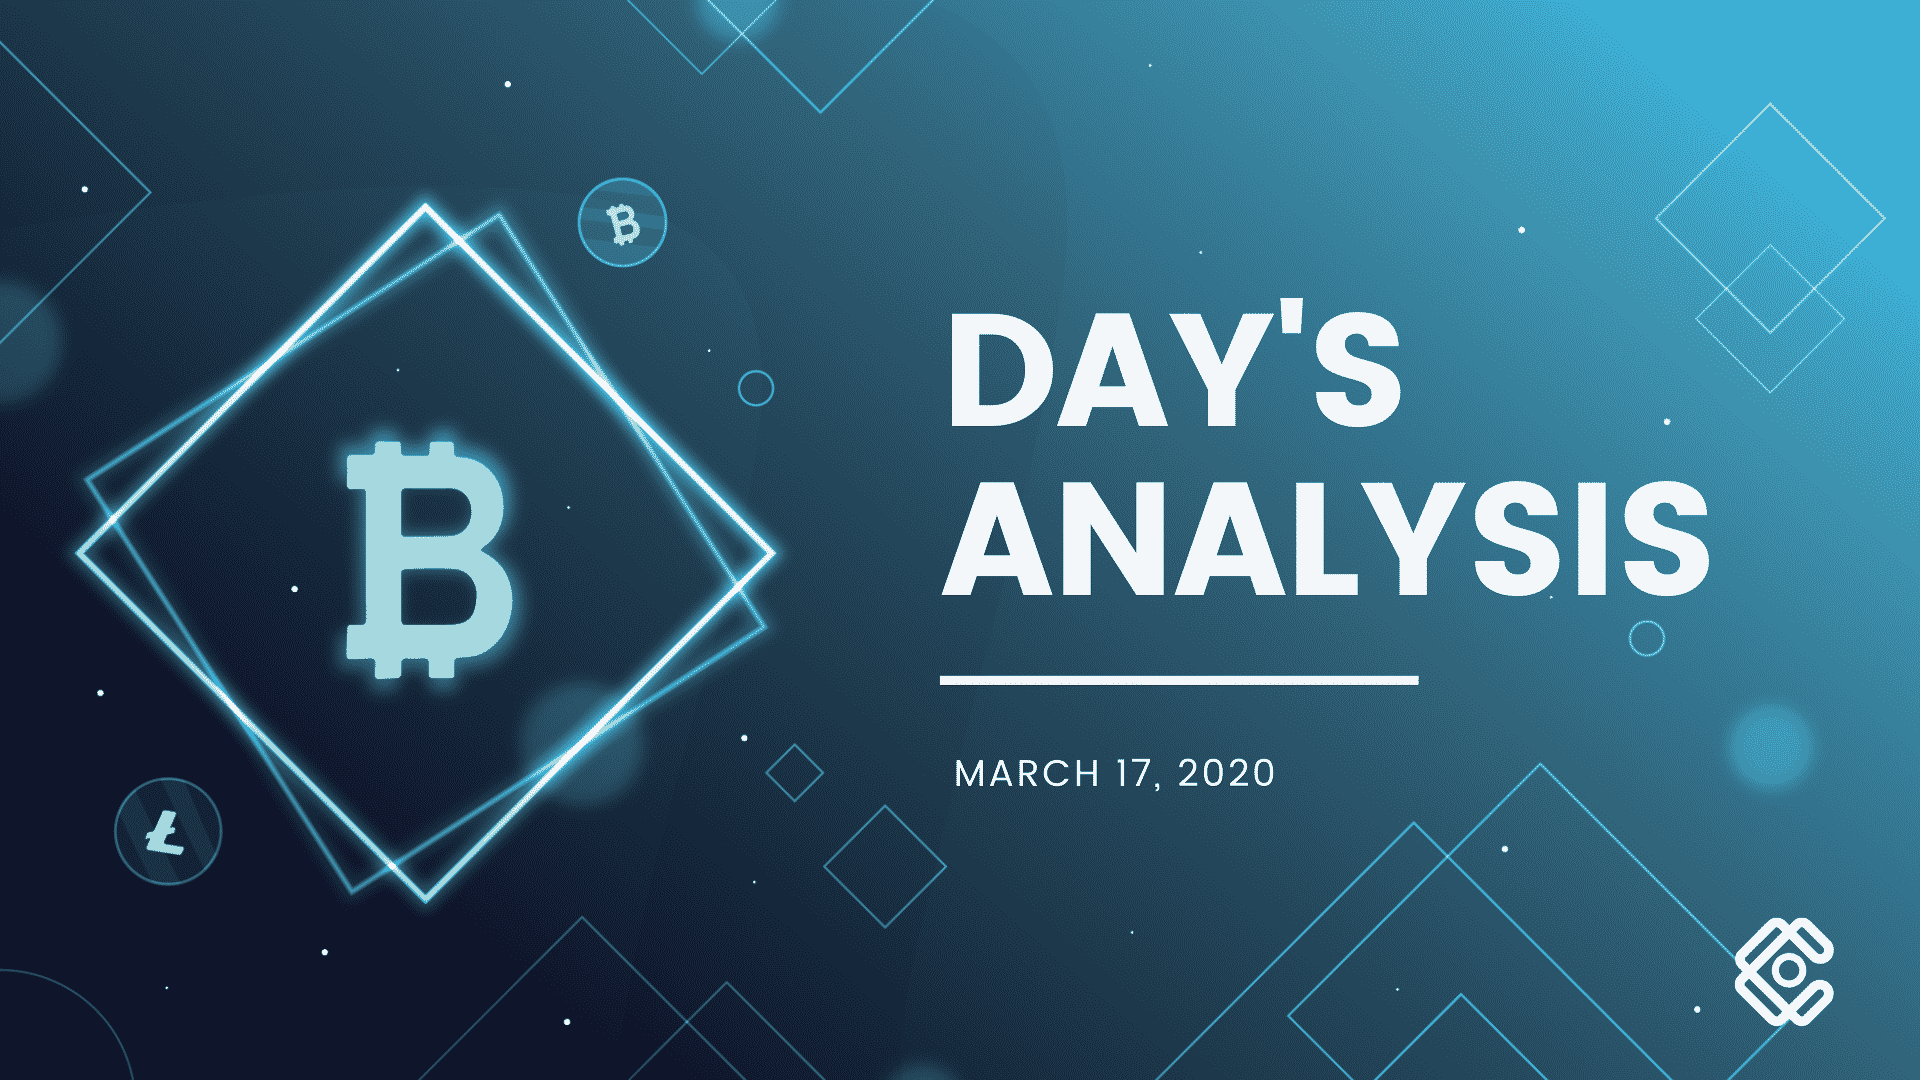 Market Analysis of March 17, 2020